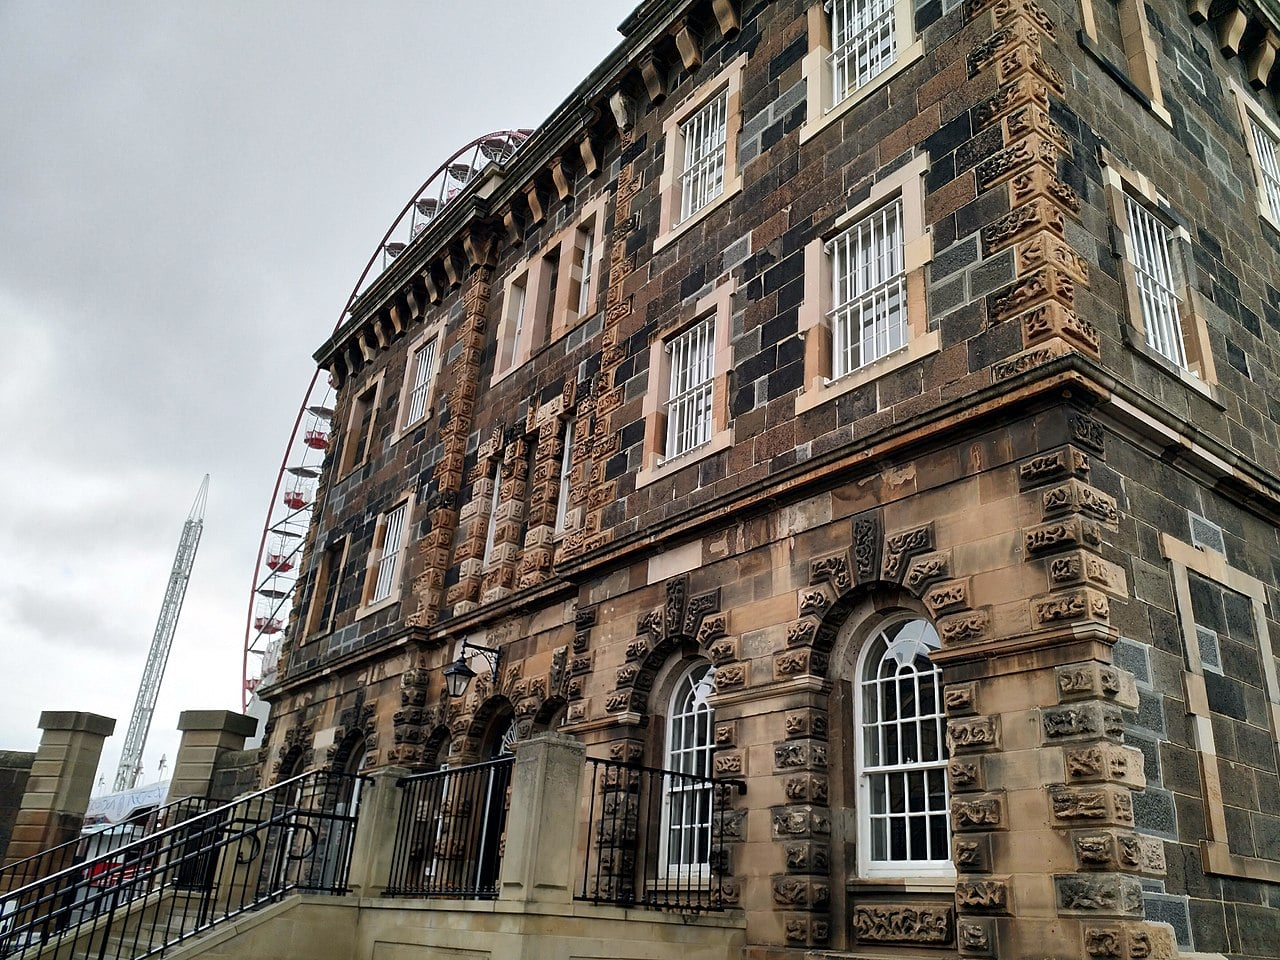 Exploring the Crumlin Road Gaol is a cool thing to do in Belfast Ireland